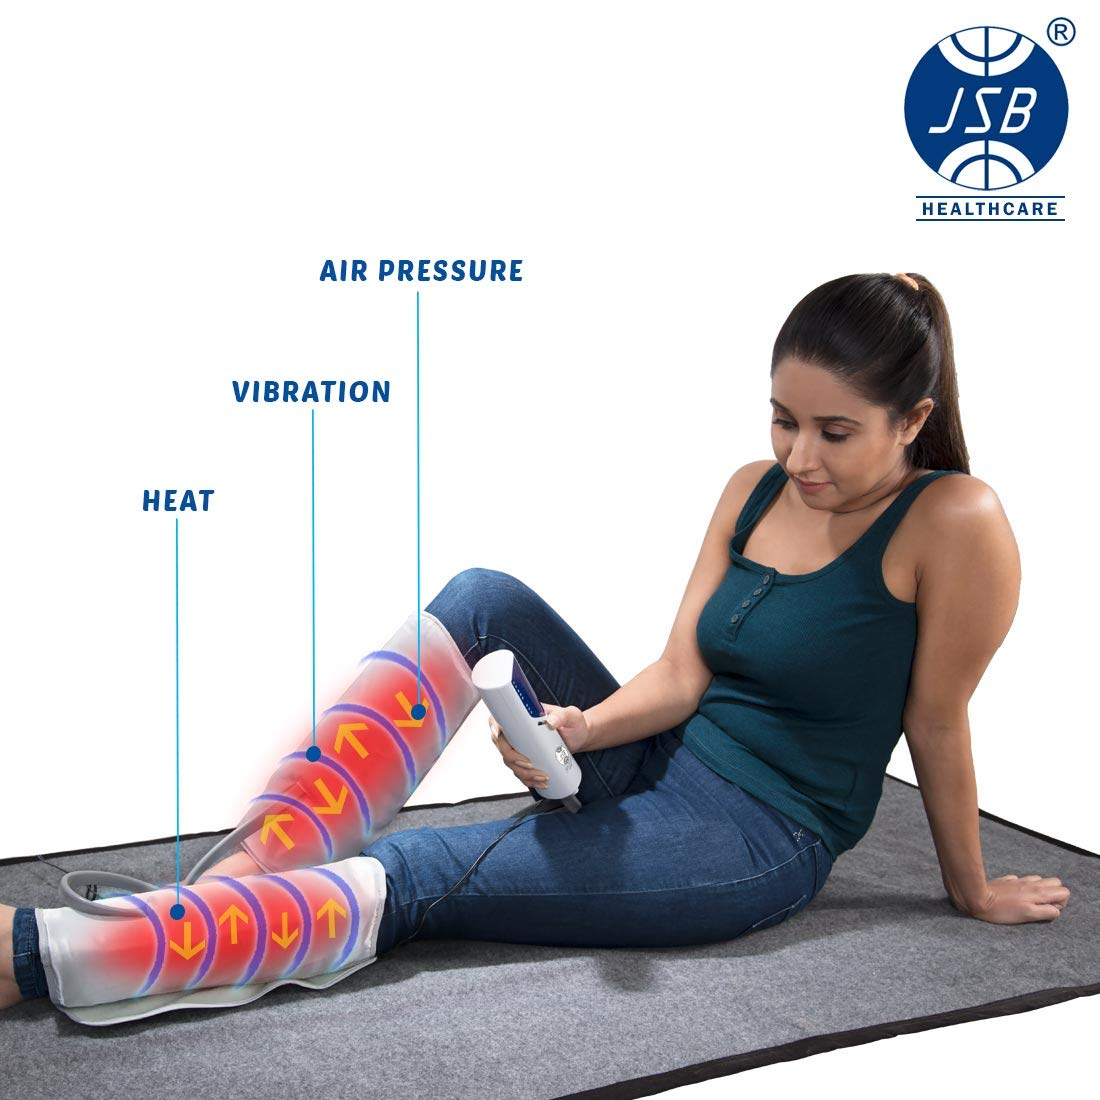 JSB HF66 Leg Massager For Foot Calf Pain Relief With Heat &